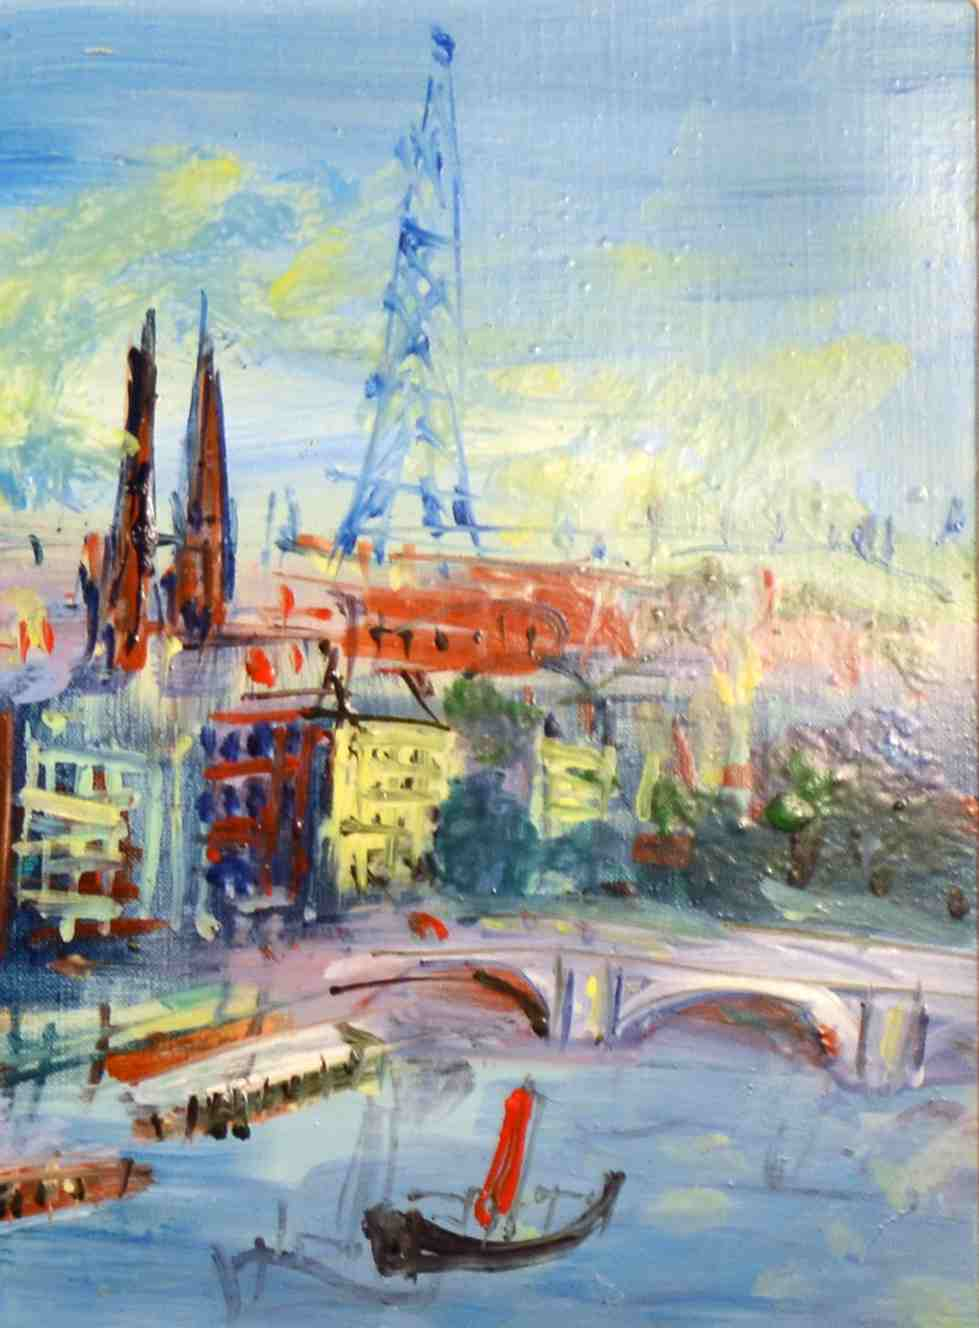 Detail of Ponts de la Seine, Jean Dufy, oil on canvas, 1952